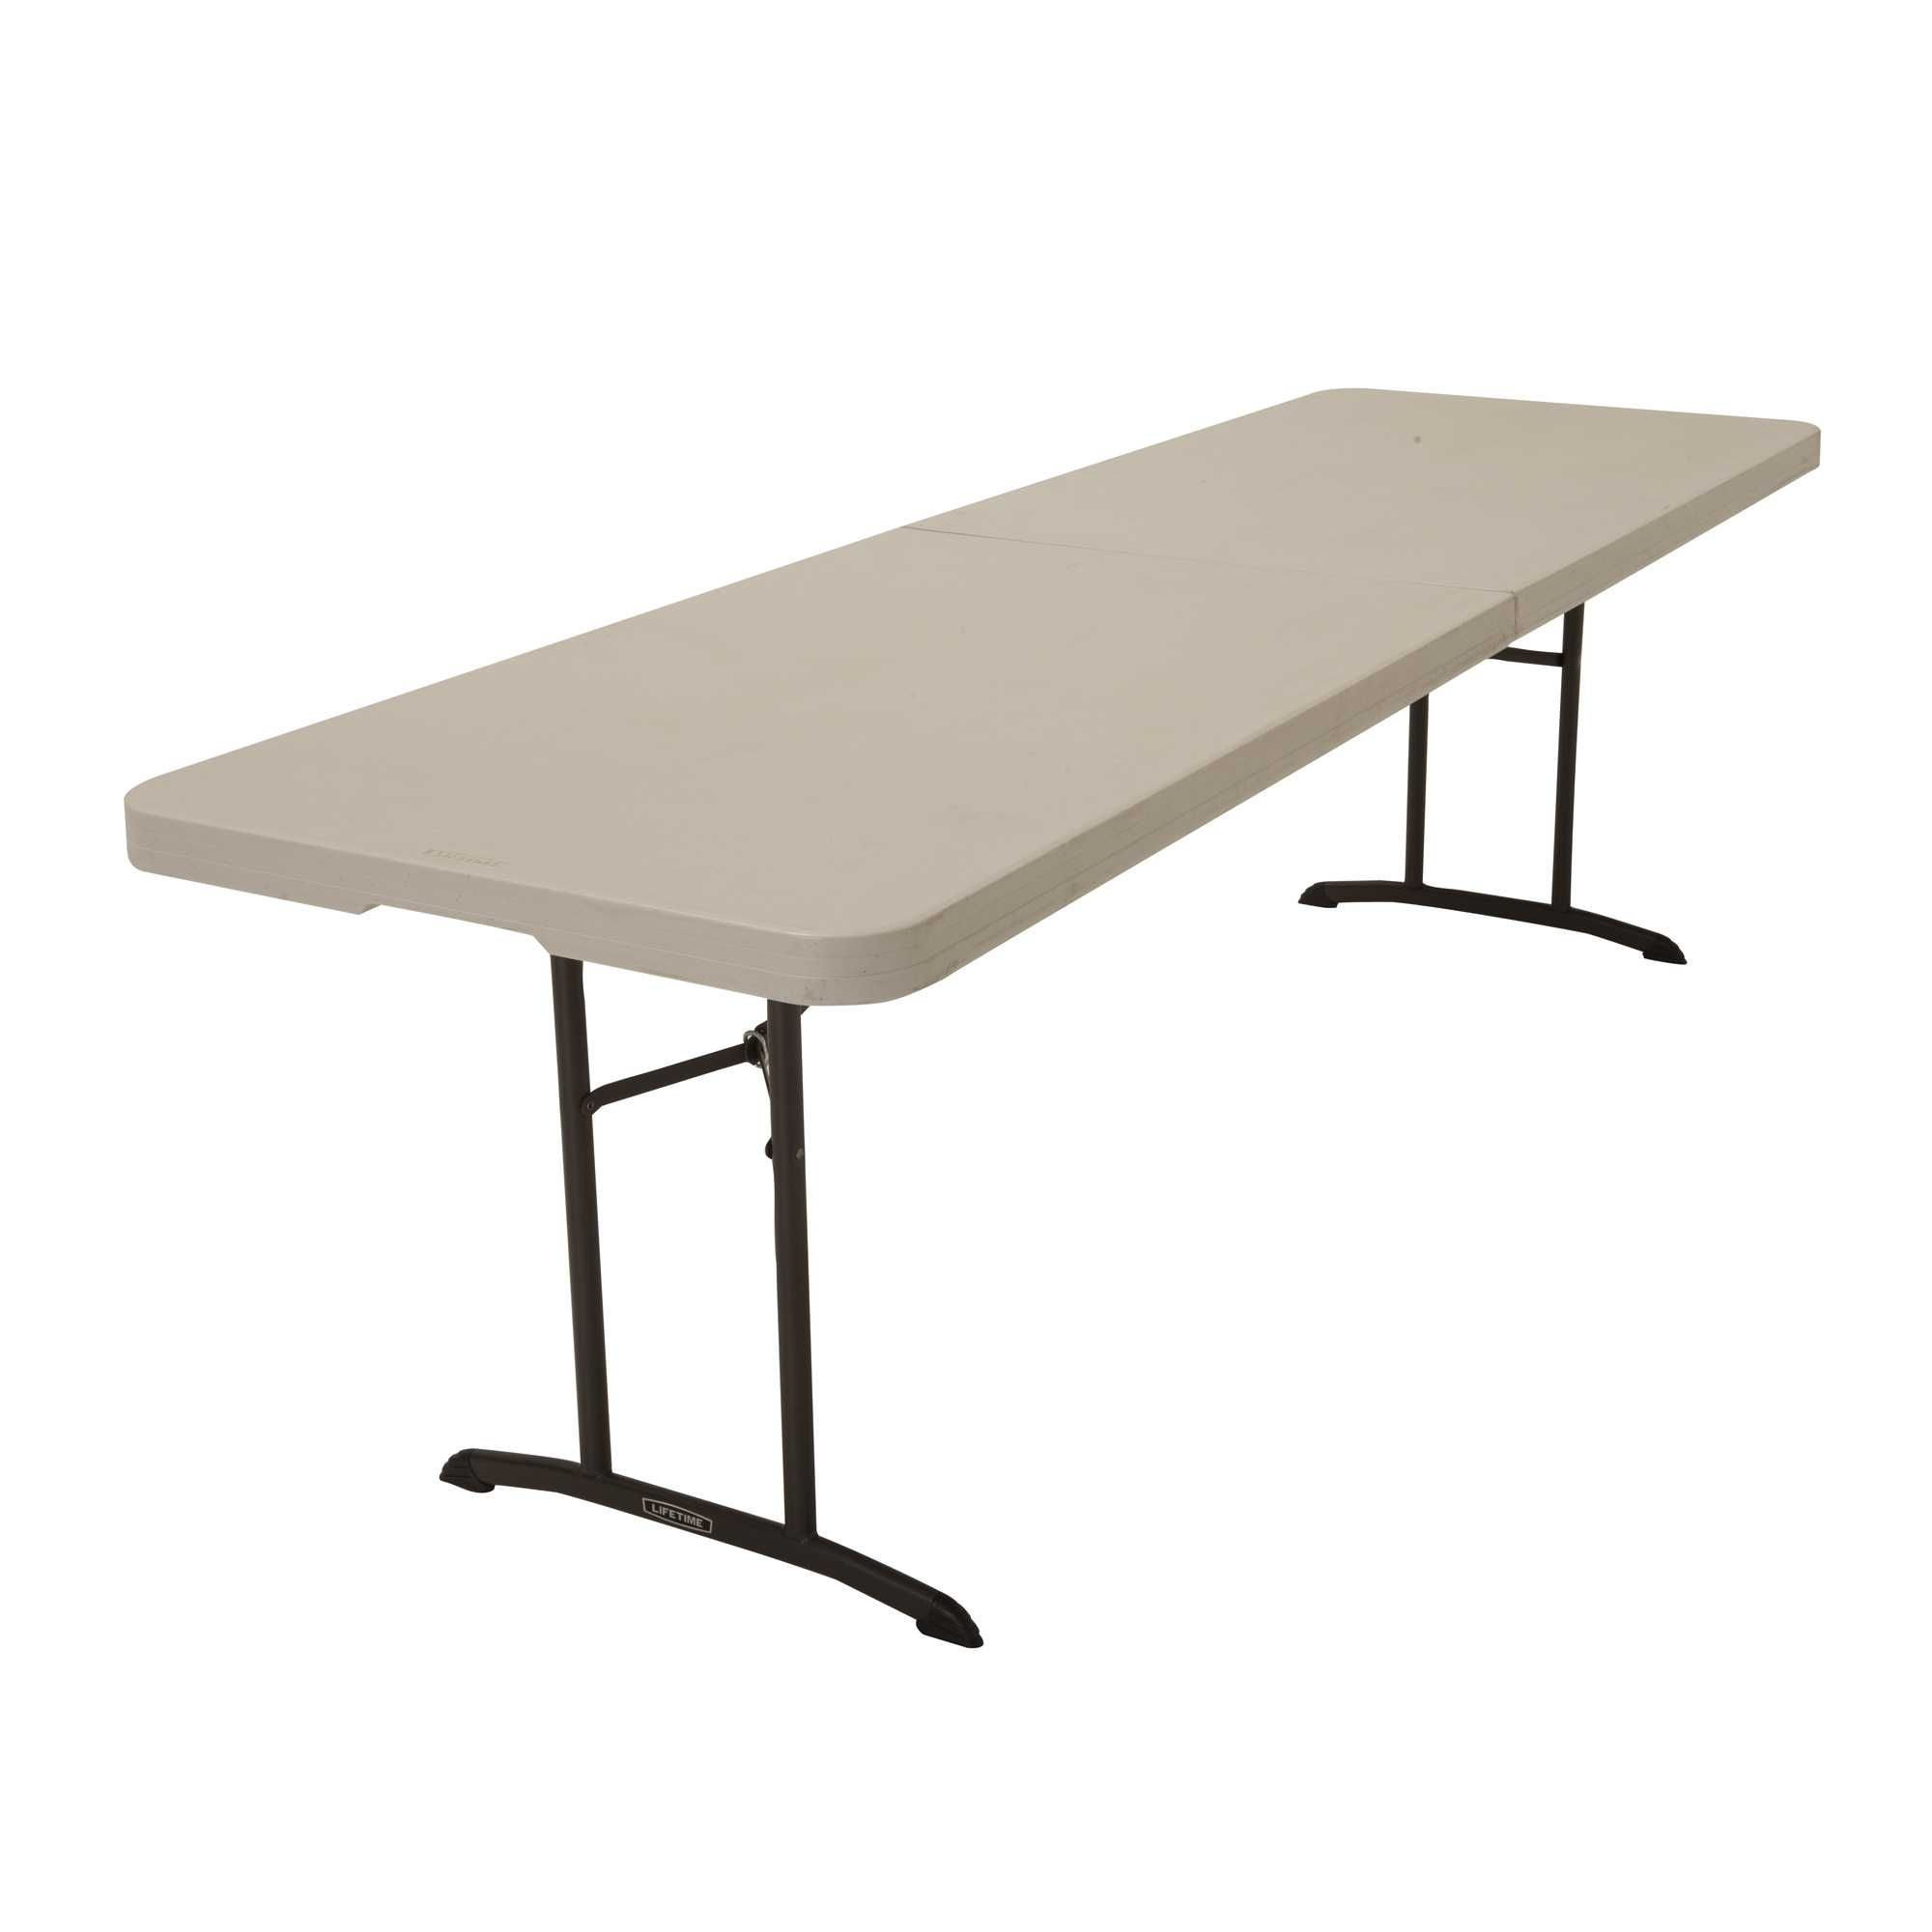 Pin By Competitive Edge Products Inc On Lifetime Eight Foot Fold In Half Tables Folding Table Lifetime Tables Table